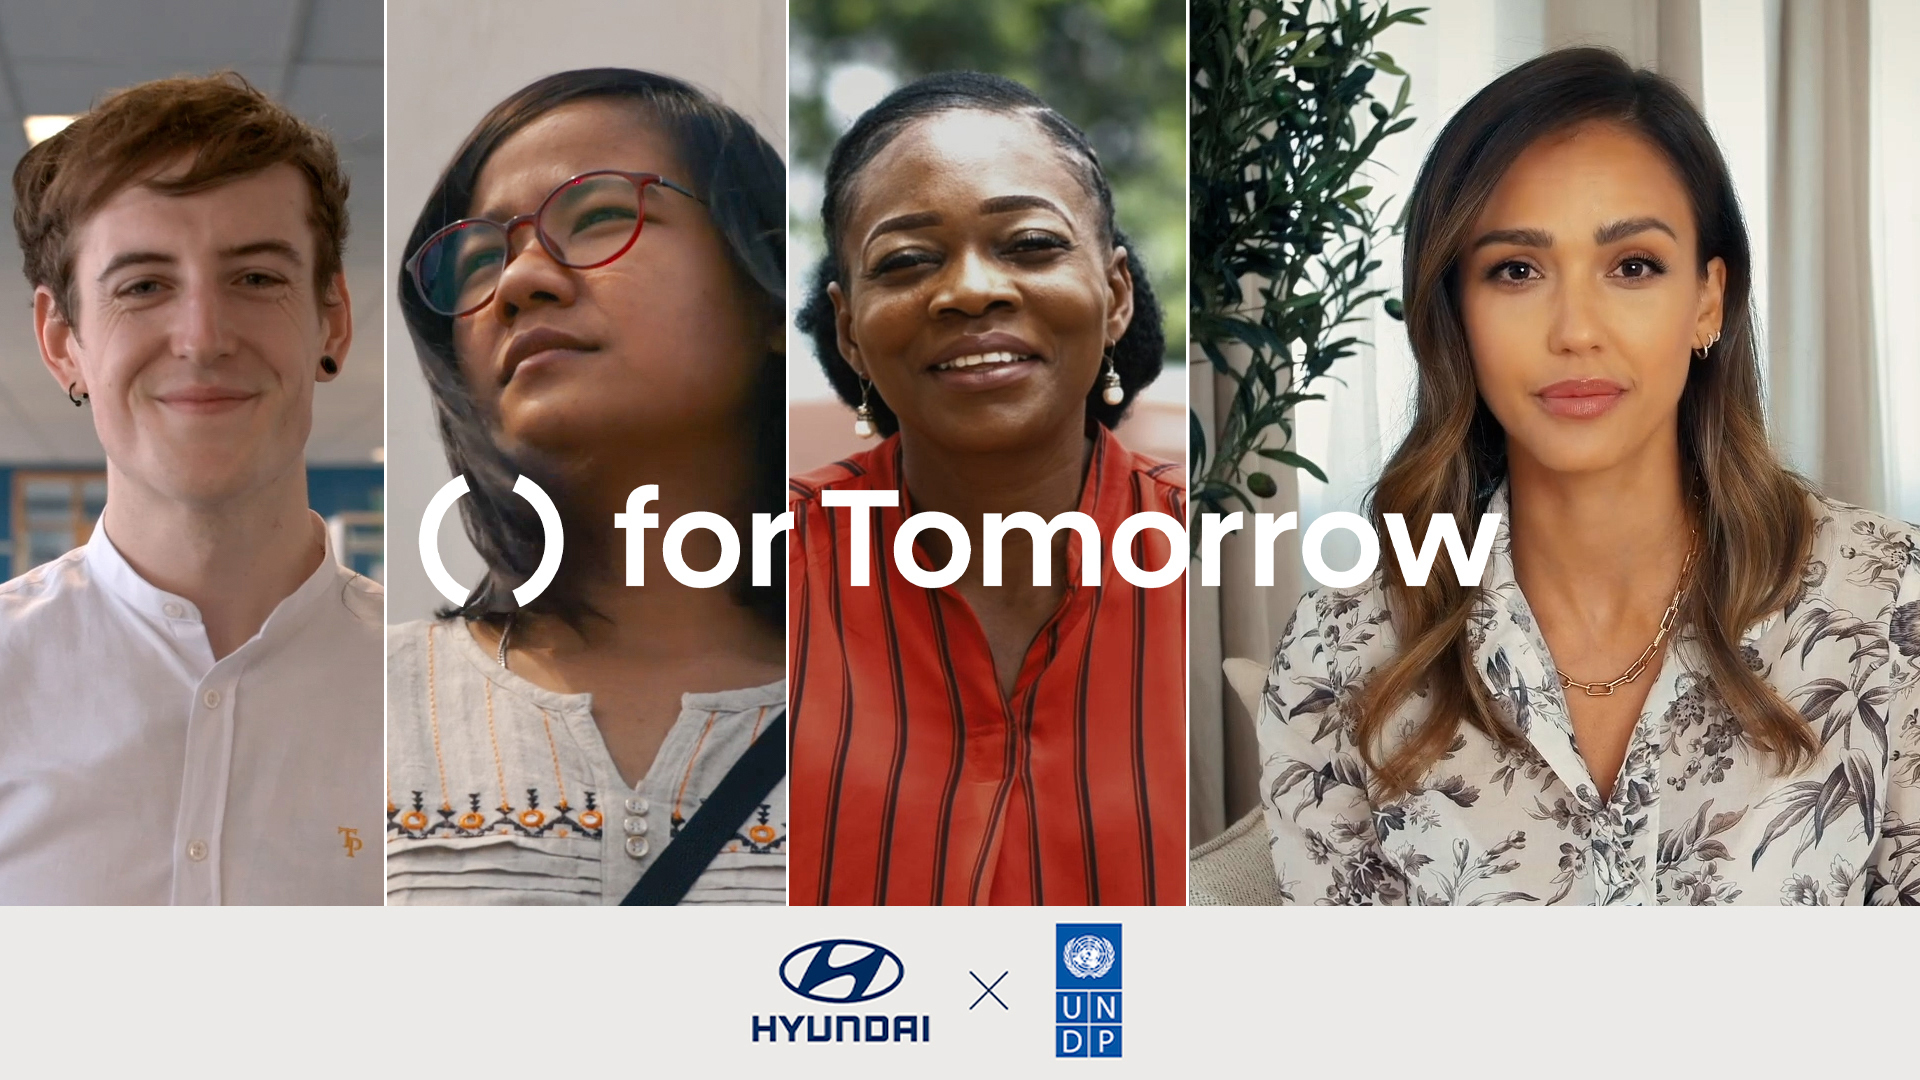 Hyundai Motor and UNDP Accelerator Labs jointly released a video featuring sustainable solutions submitted to the 'for Tomorrow' project, narrated by project ambassador Jessica Alba.